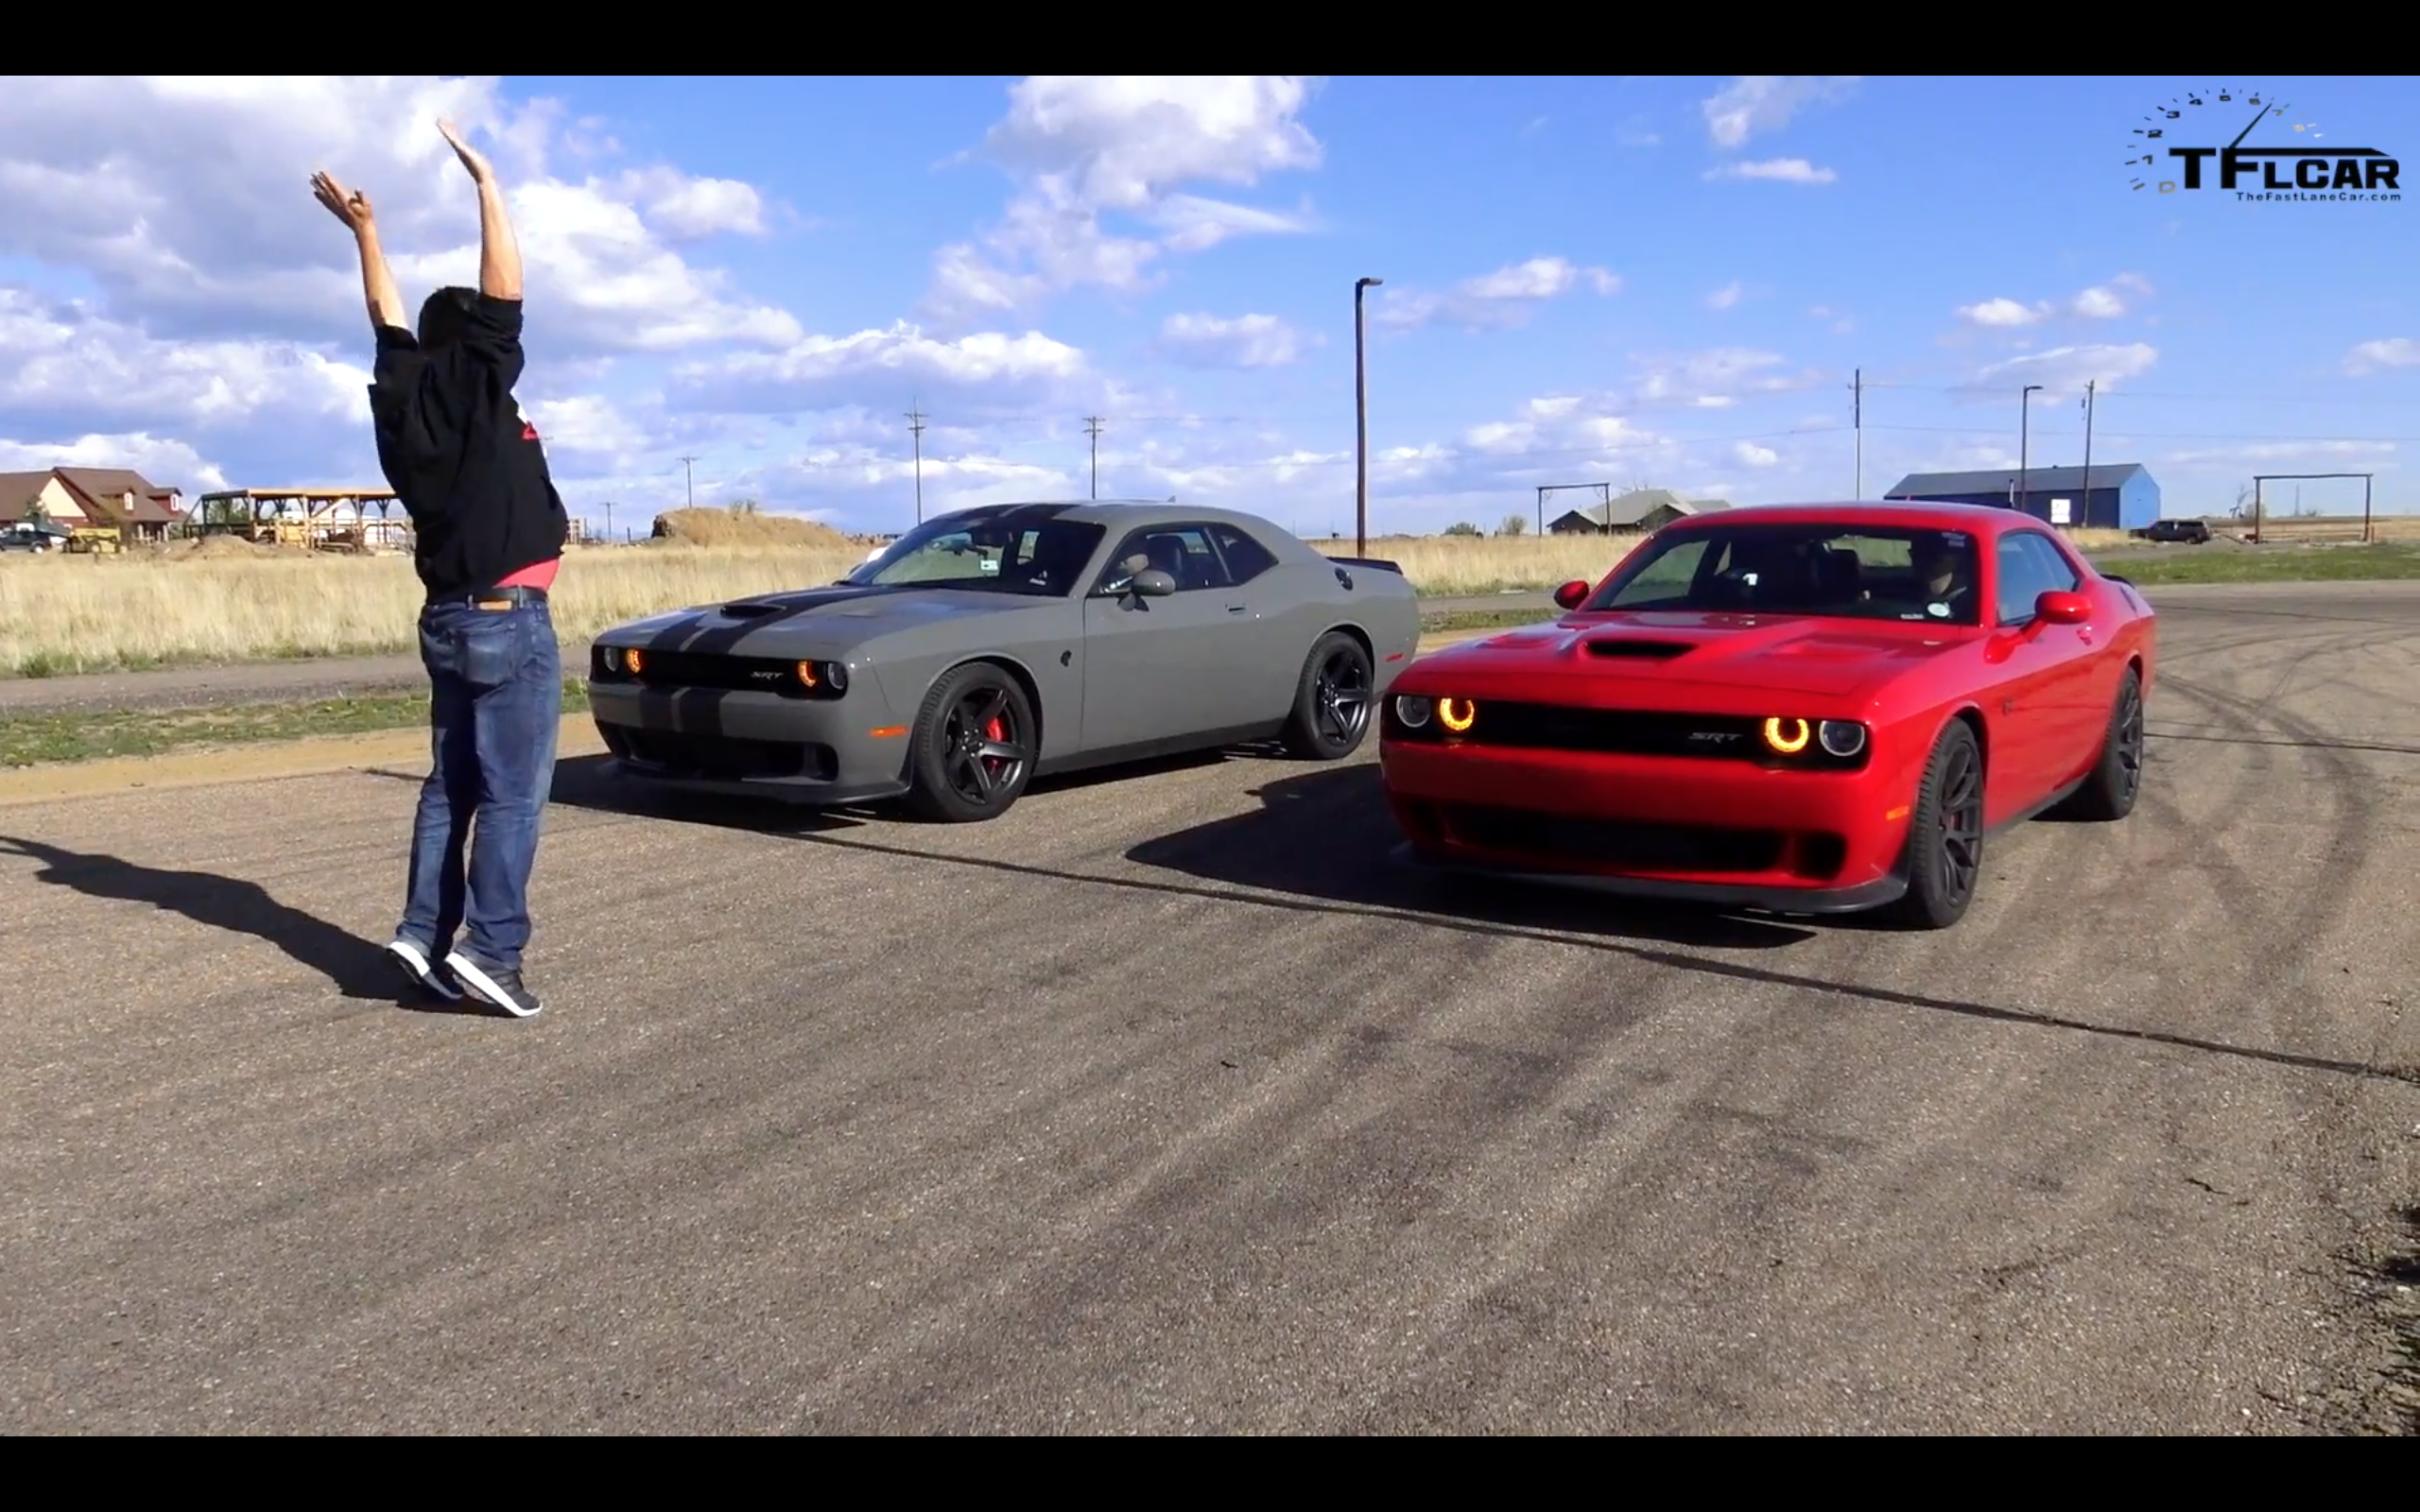 Video Which Srt Hellcat Is Faster 2016 Or 2017 Srt Hellcat